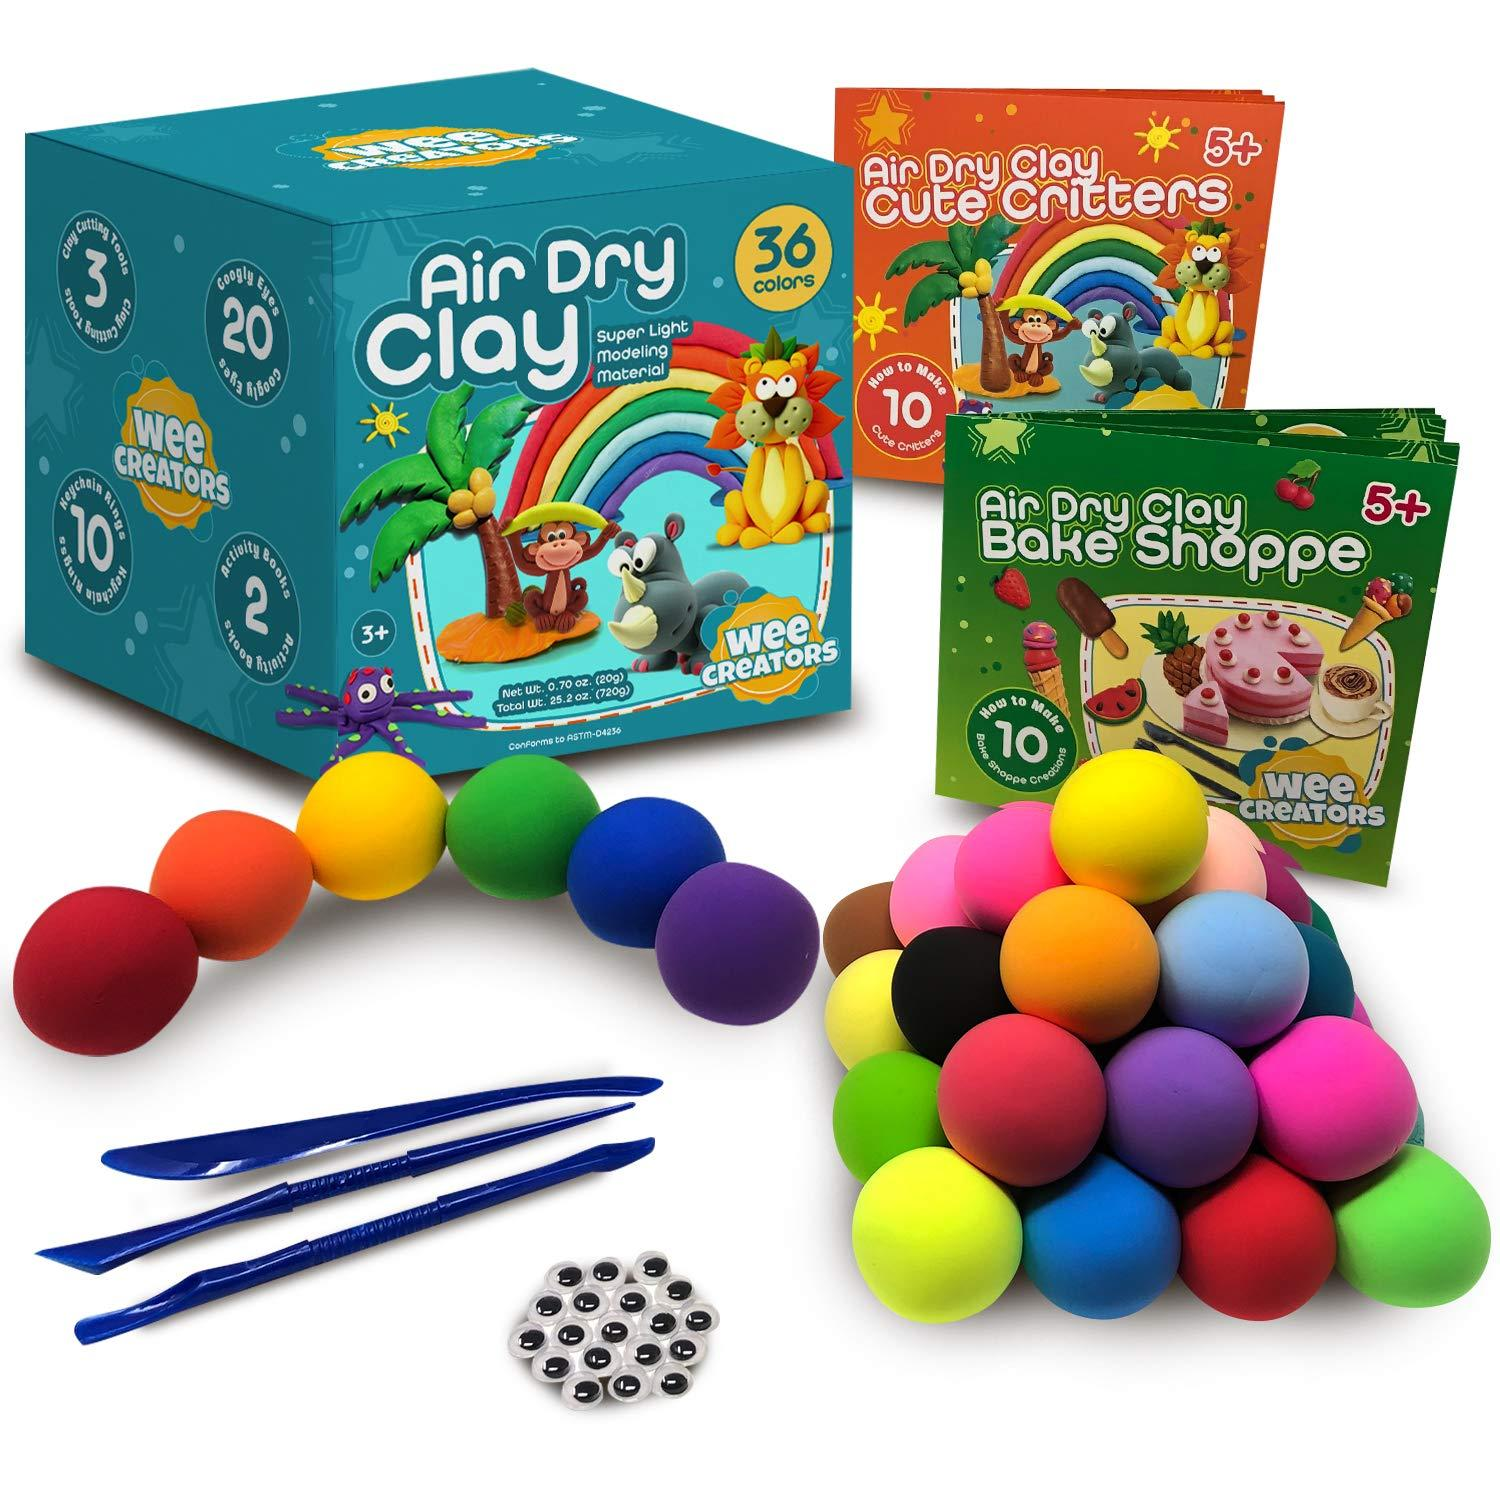 balls of air dry clay and air dry clay art sets